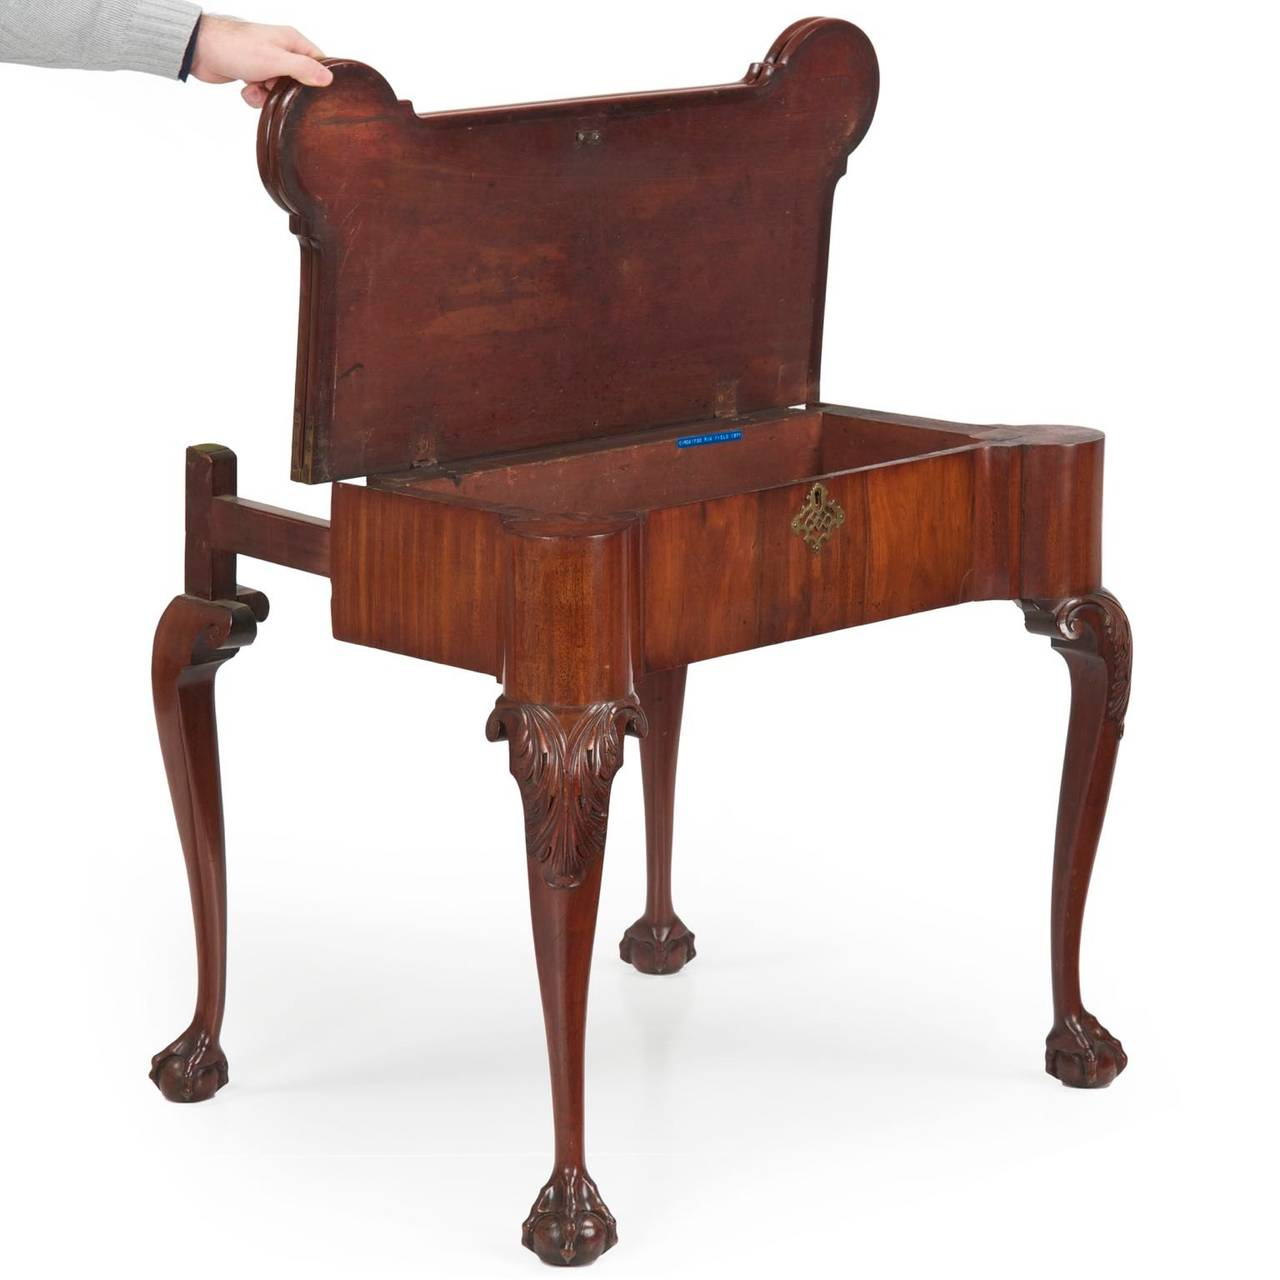 Swell English George Ii Mahogany Ball And Claw Antique Game Table Machost Co Dining Chair Design Ideas Machostcouk